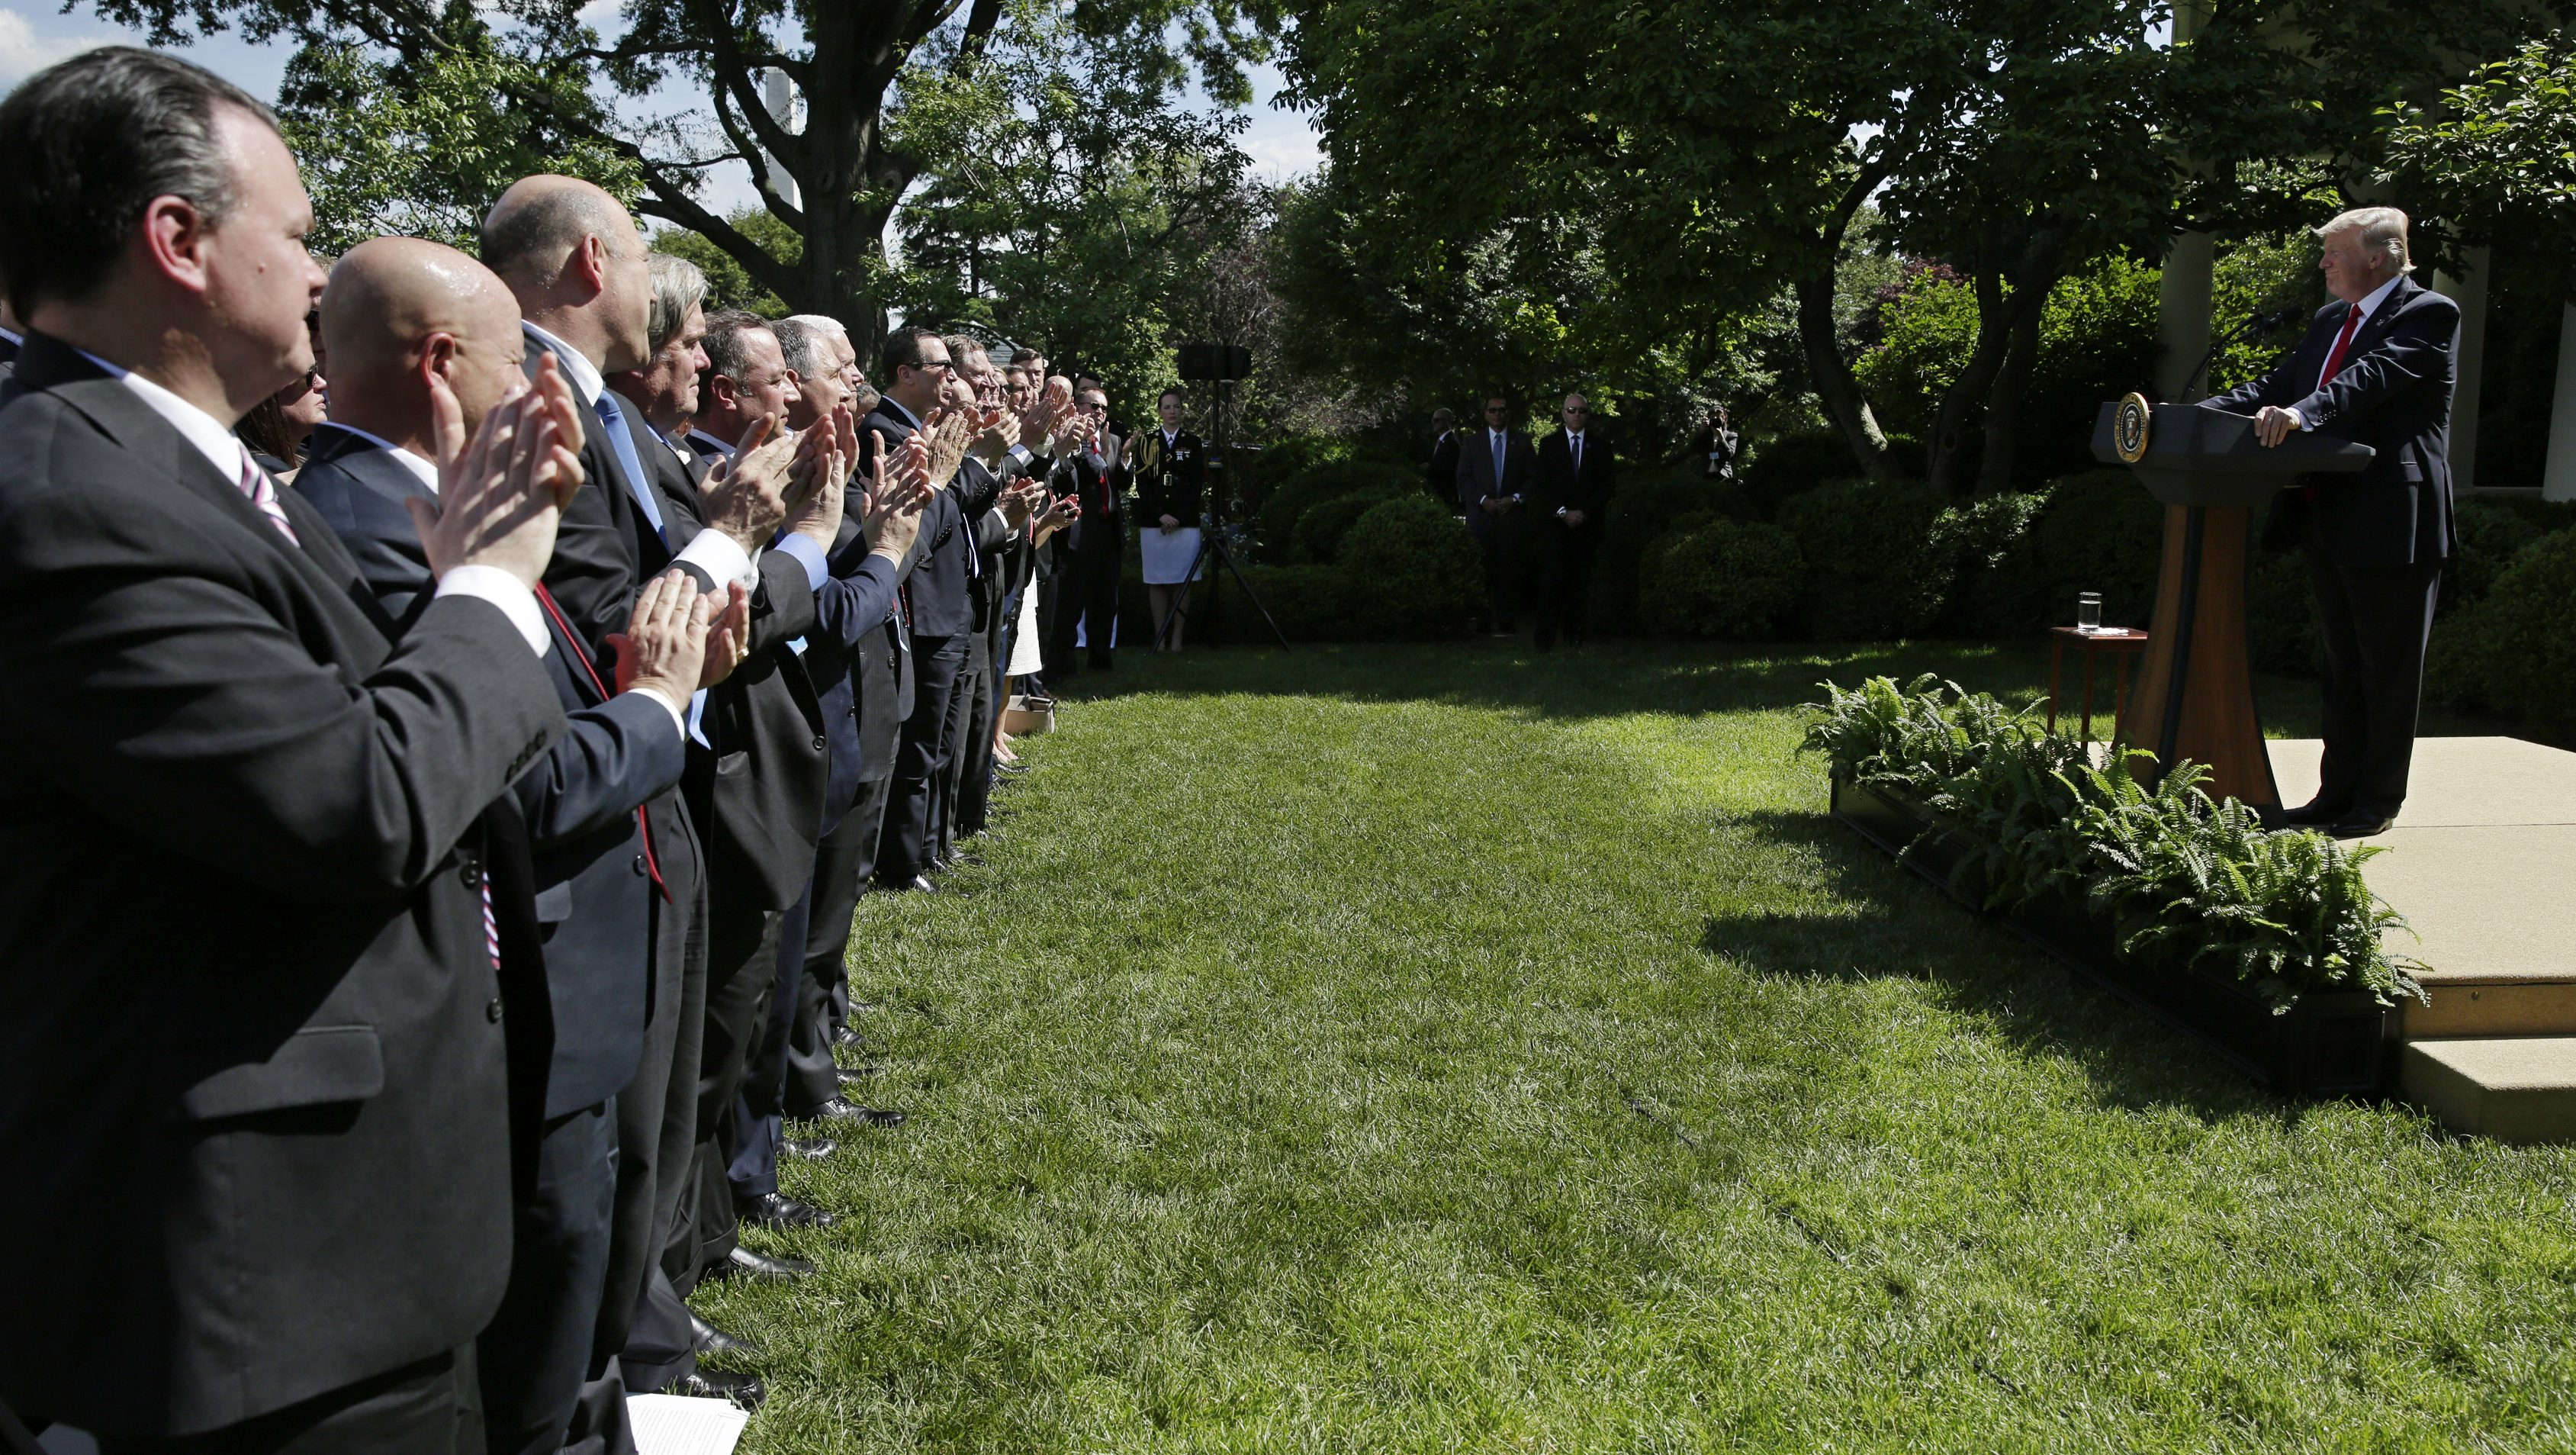 U.S. President Donald Trump is applauded as he announces his decision to withdraw from the Paris Climate Agreement in the Rose Garden of the White House in Washington, U.S., June 1, 2017. REUTERS/Joshua Roberts - RTX38PEA